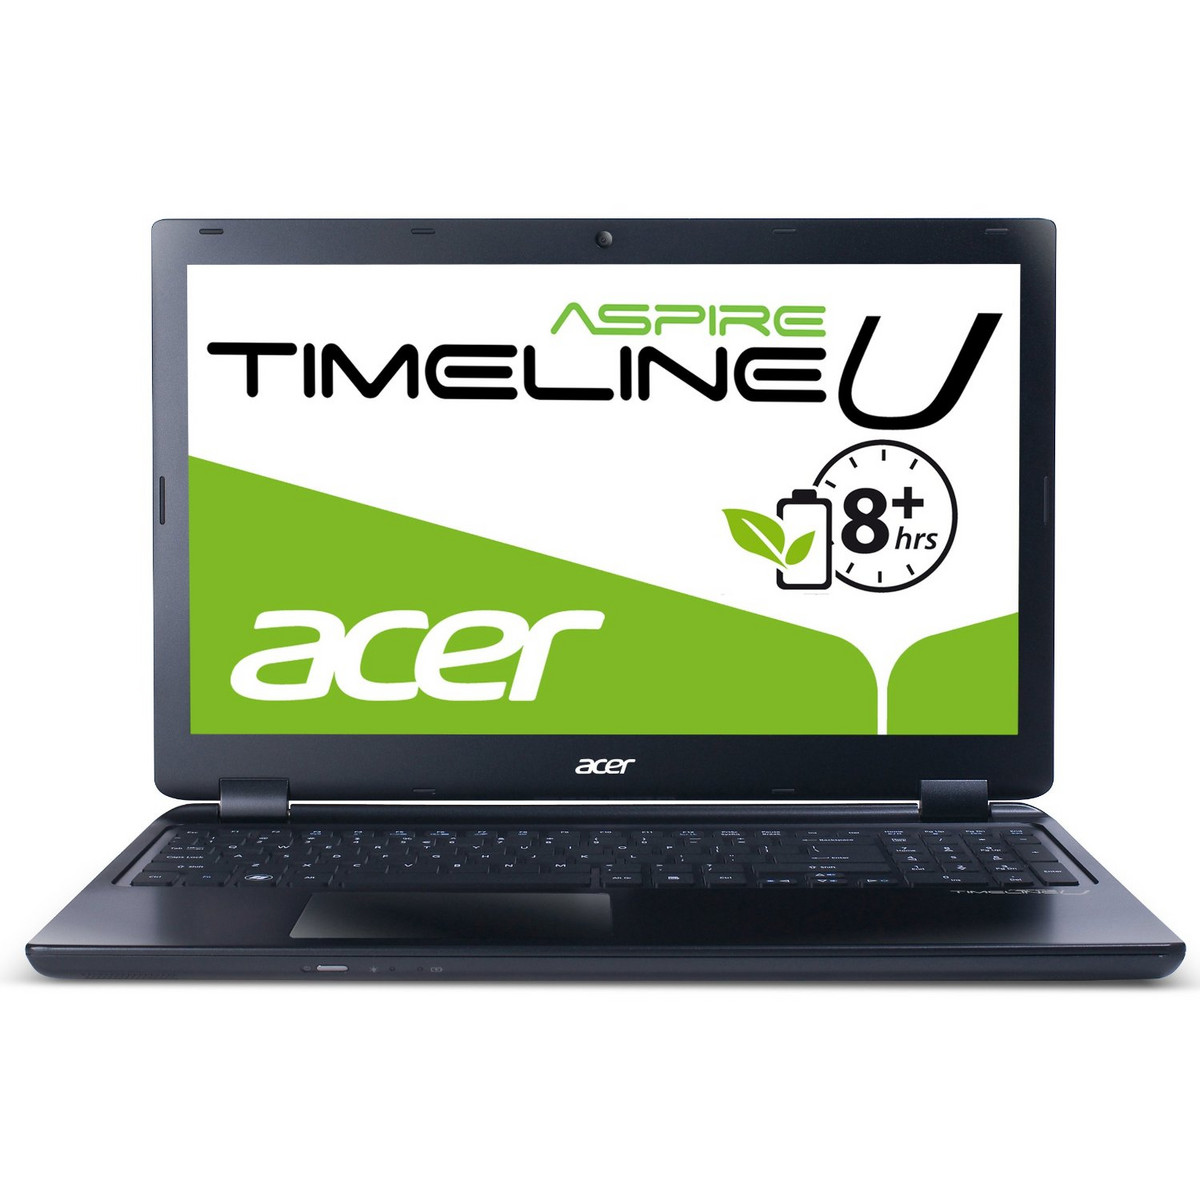 Acer Aspire M3-581PT UEFI Driver Windows 7